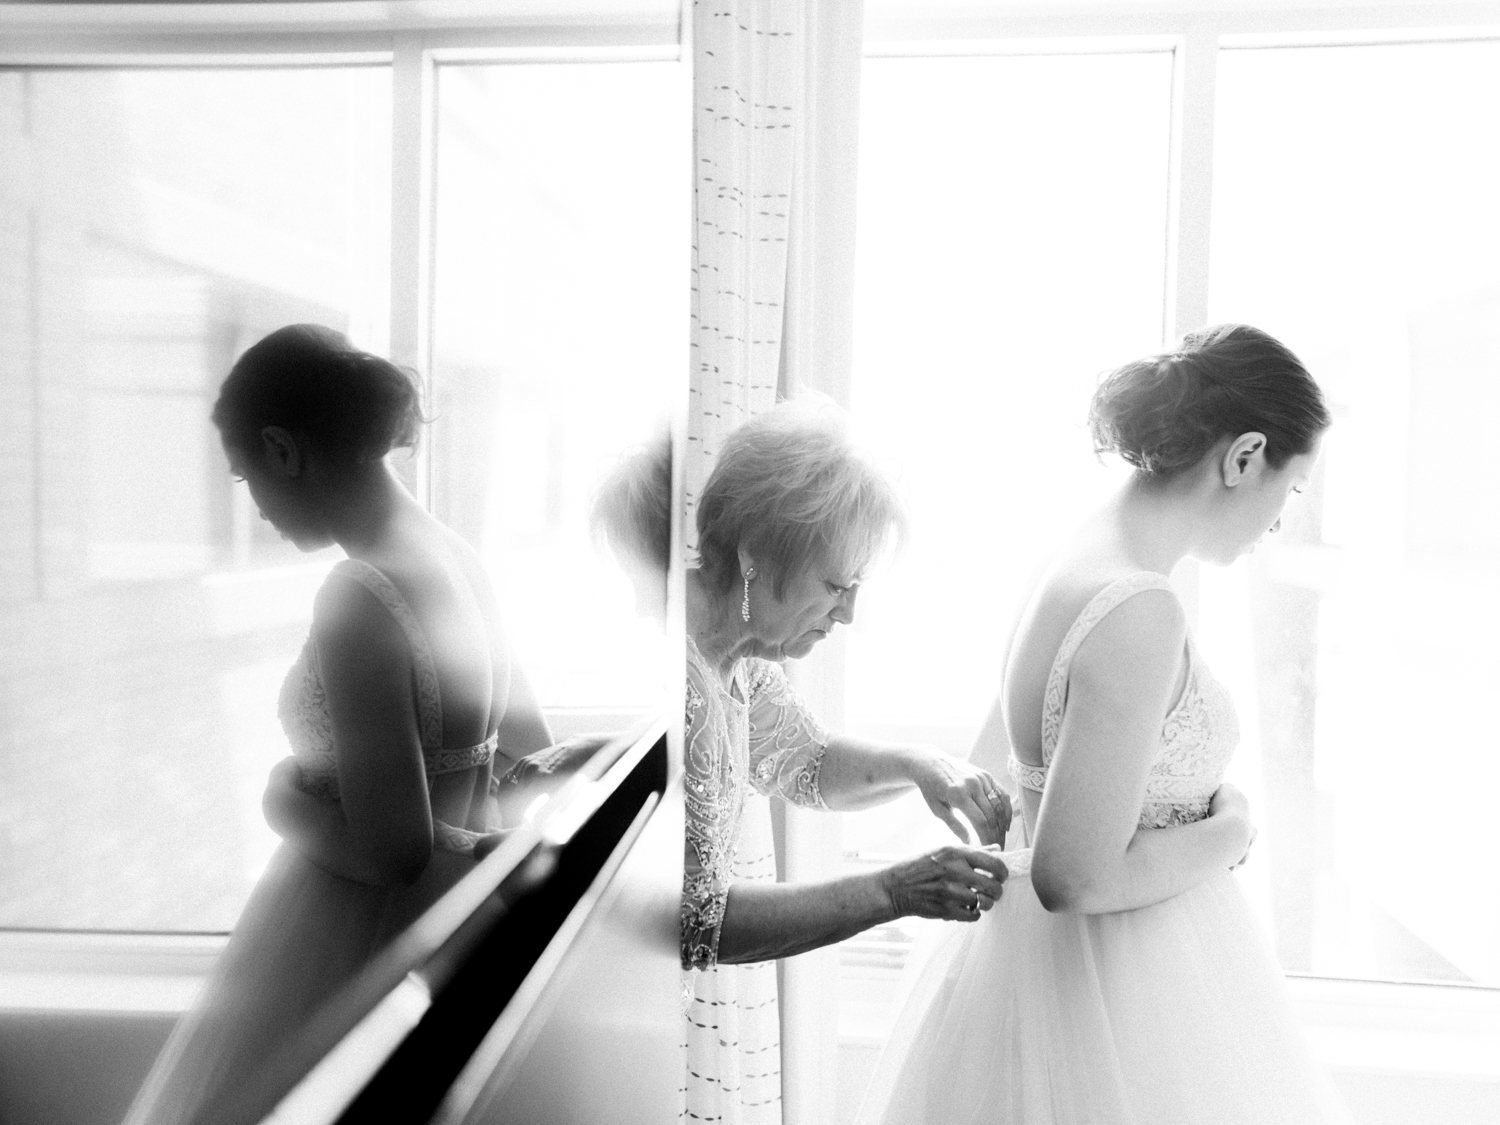 An artistic photo with reflections shows a mother helping her daughter into her wedding dress in Michigan